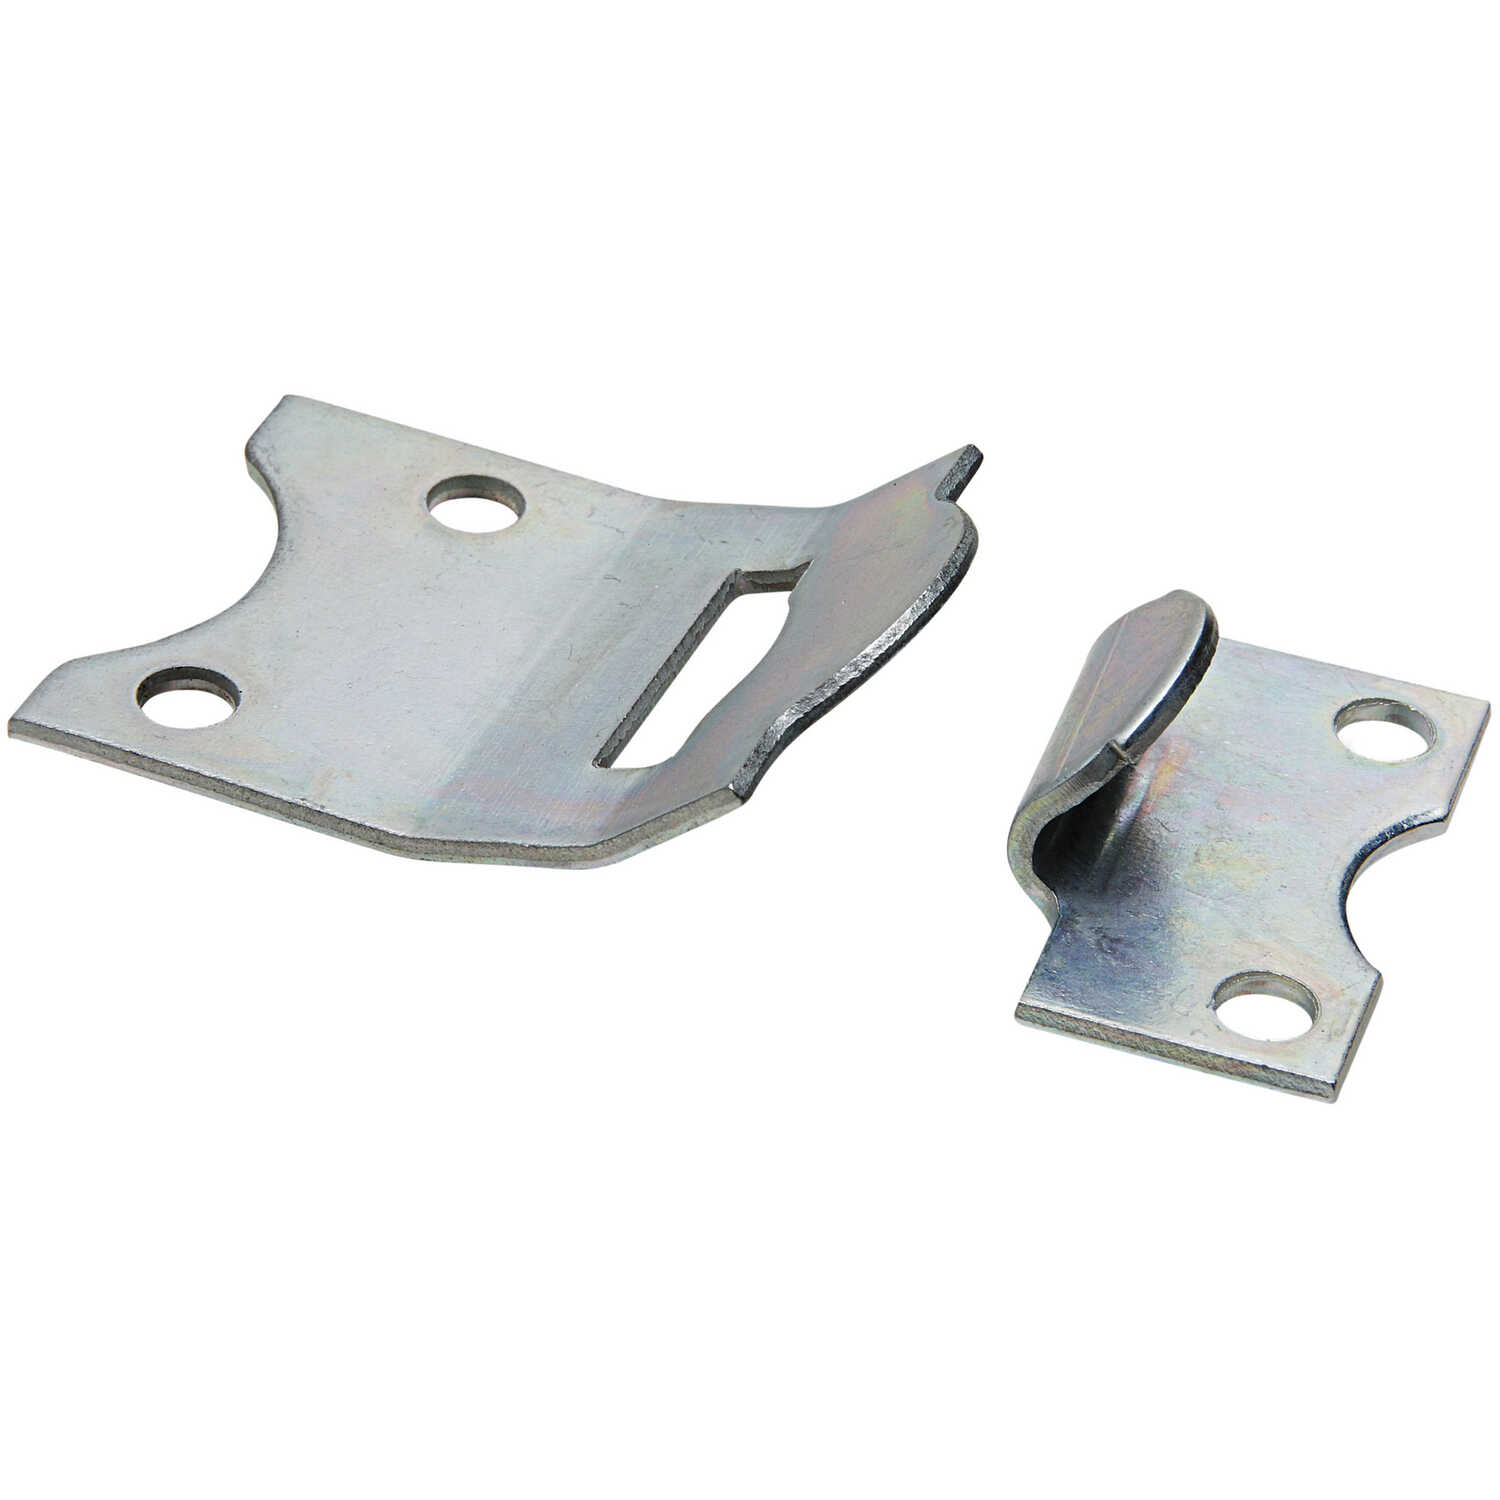 National Hardware  Zinc-Plated  Metallic  Steel  Sash Hanger  2 pk